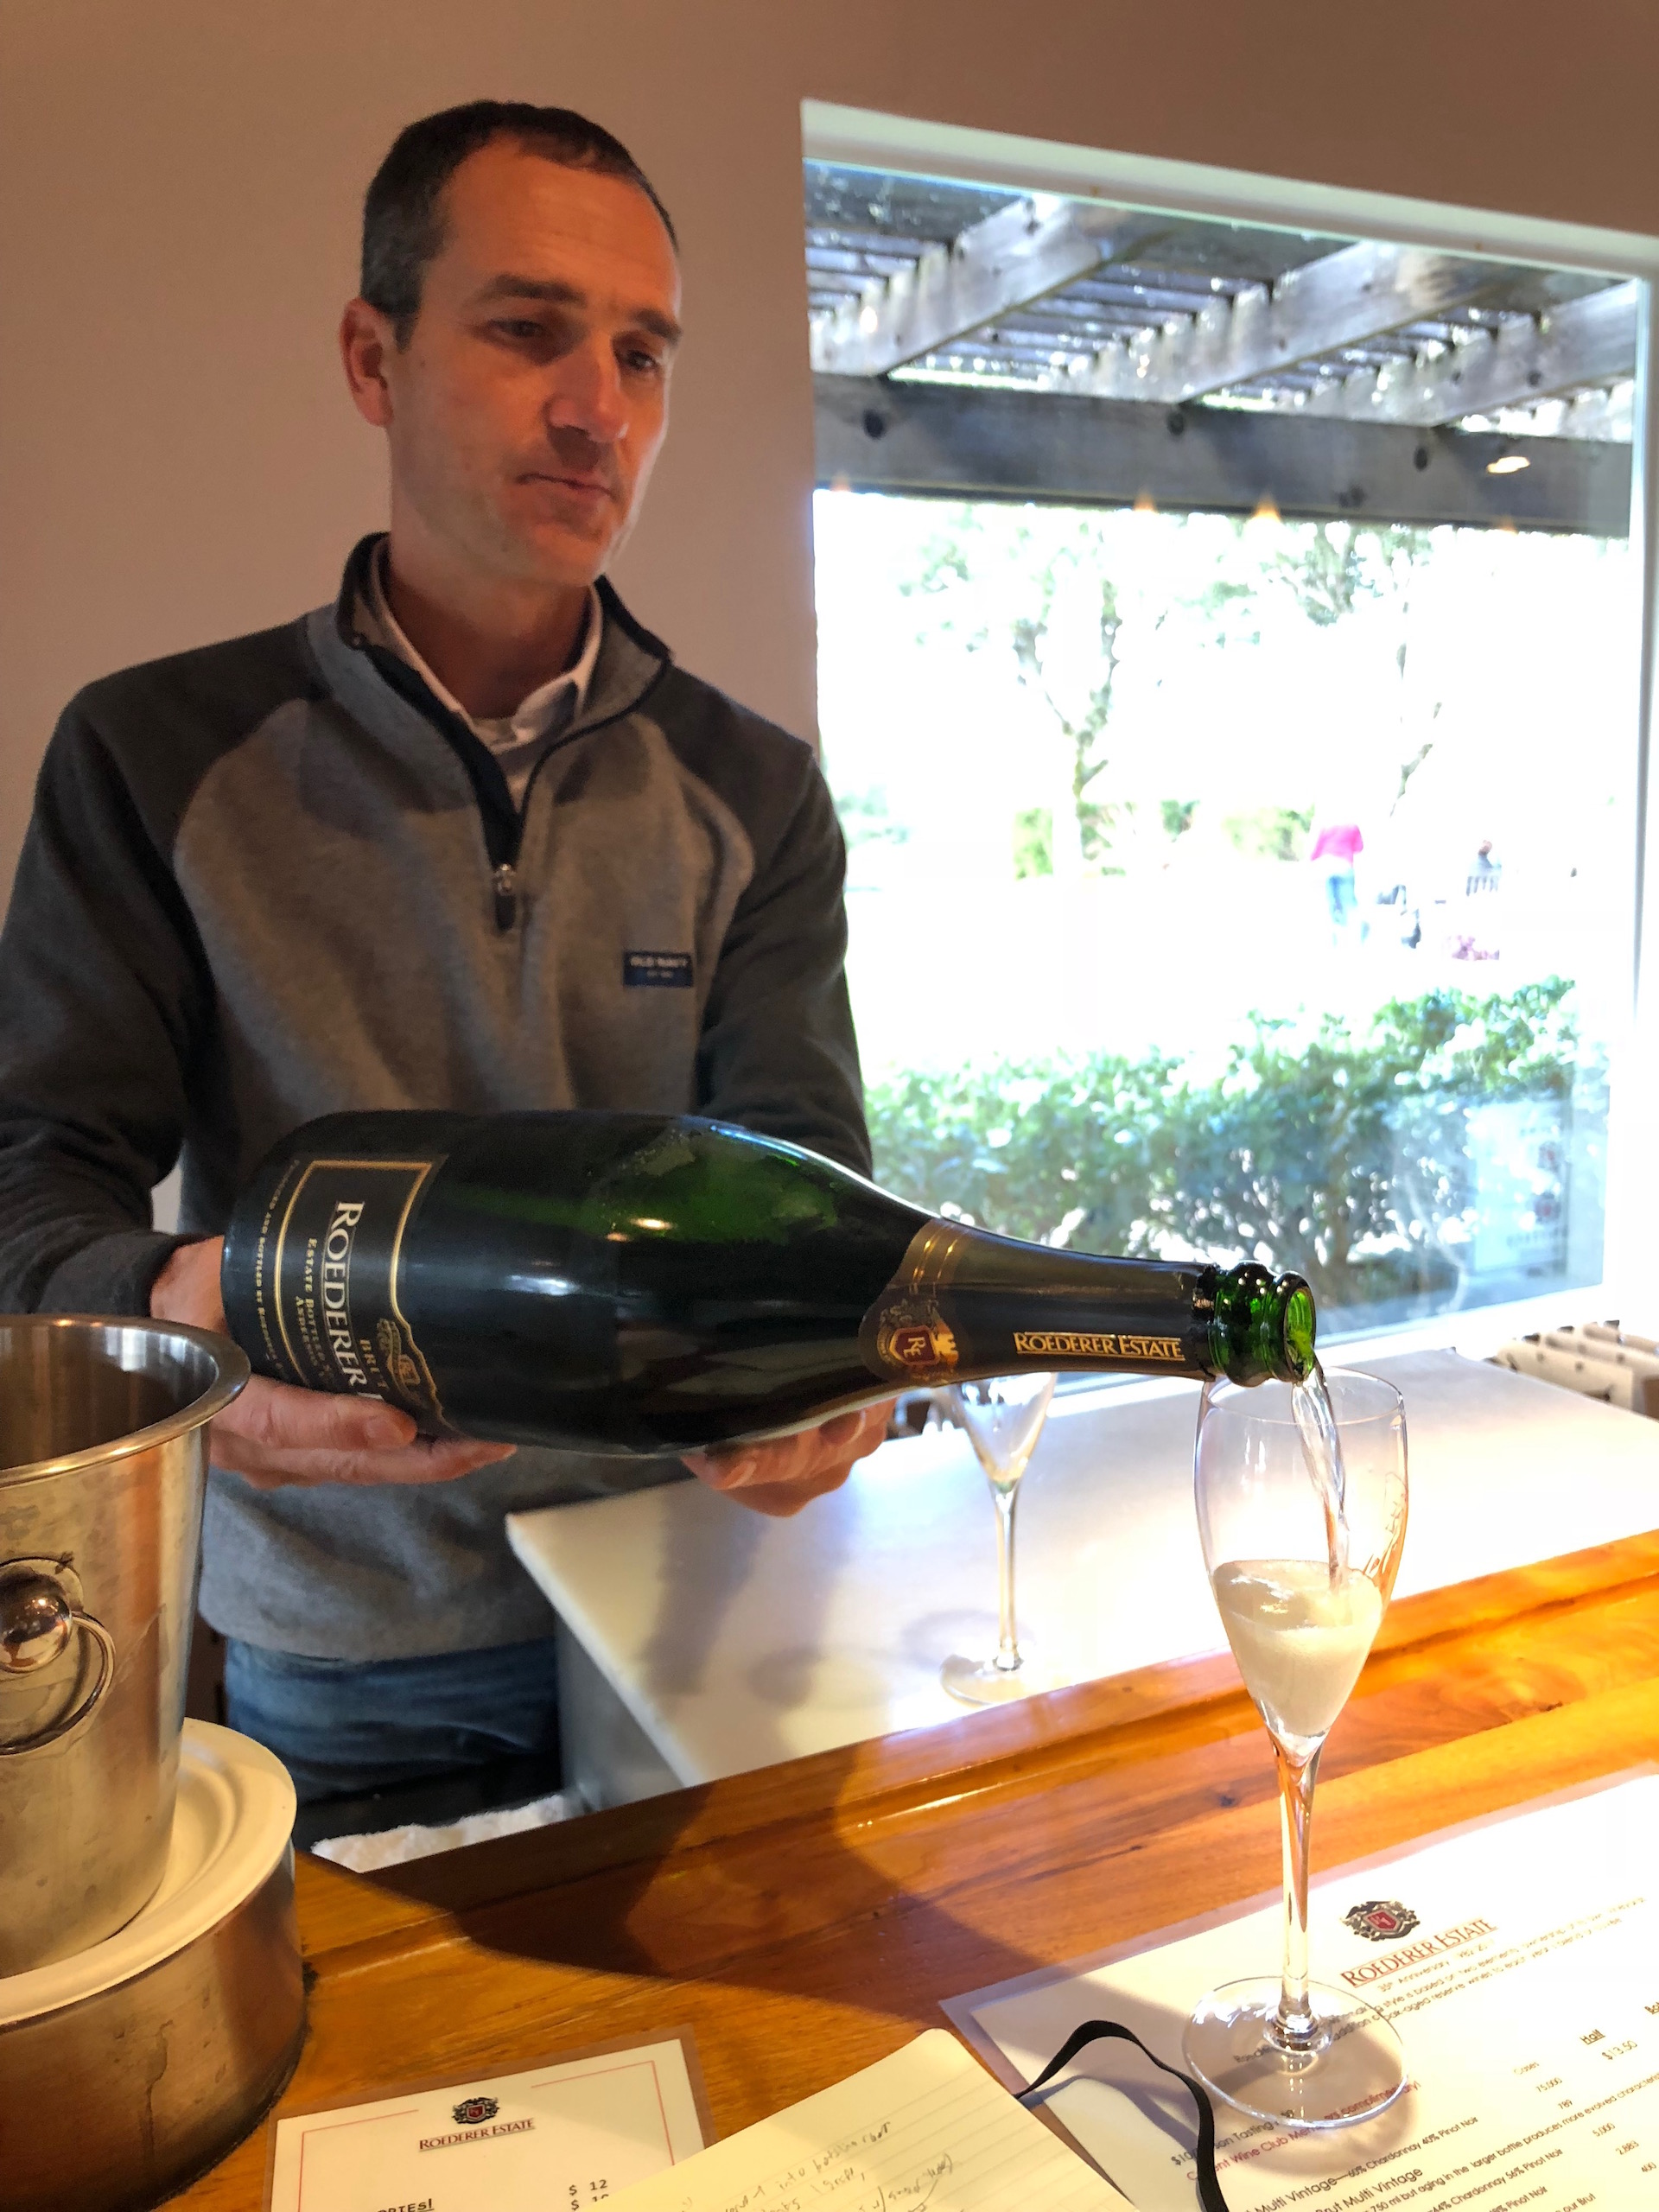 Roederer Estate's winemaker Arnaud Weyrich pours some of the superb Anderson Valley sparkling wine that the winery is known for